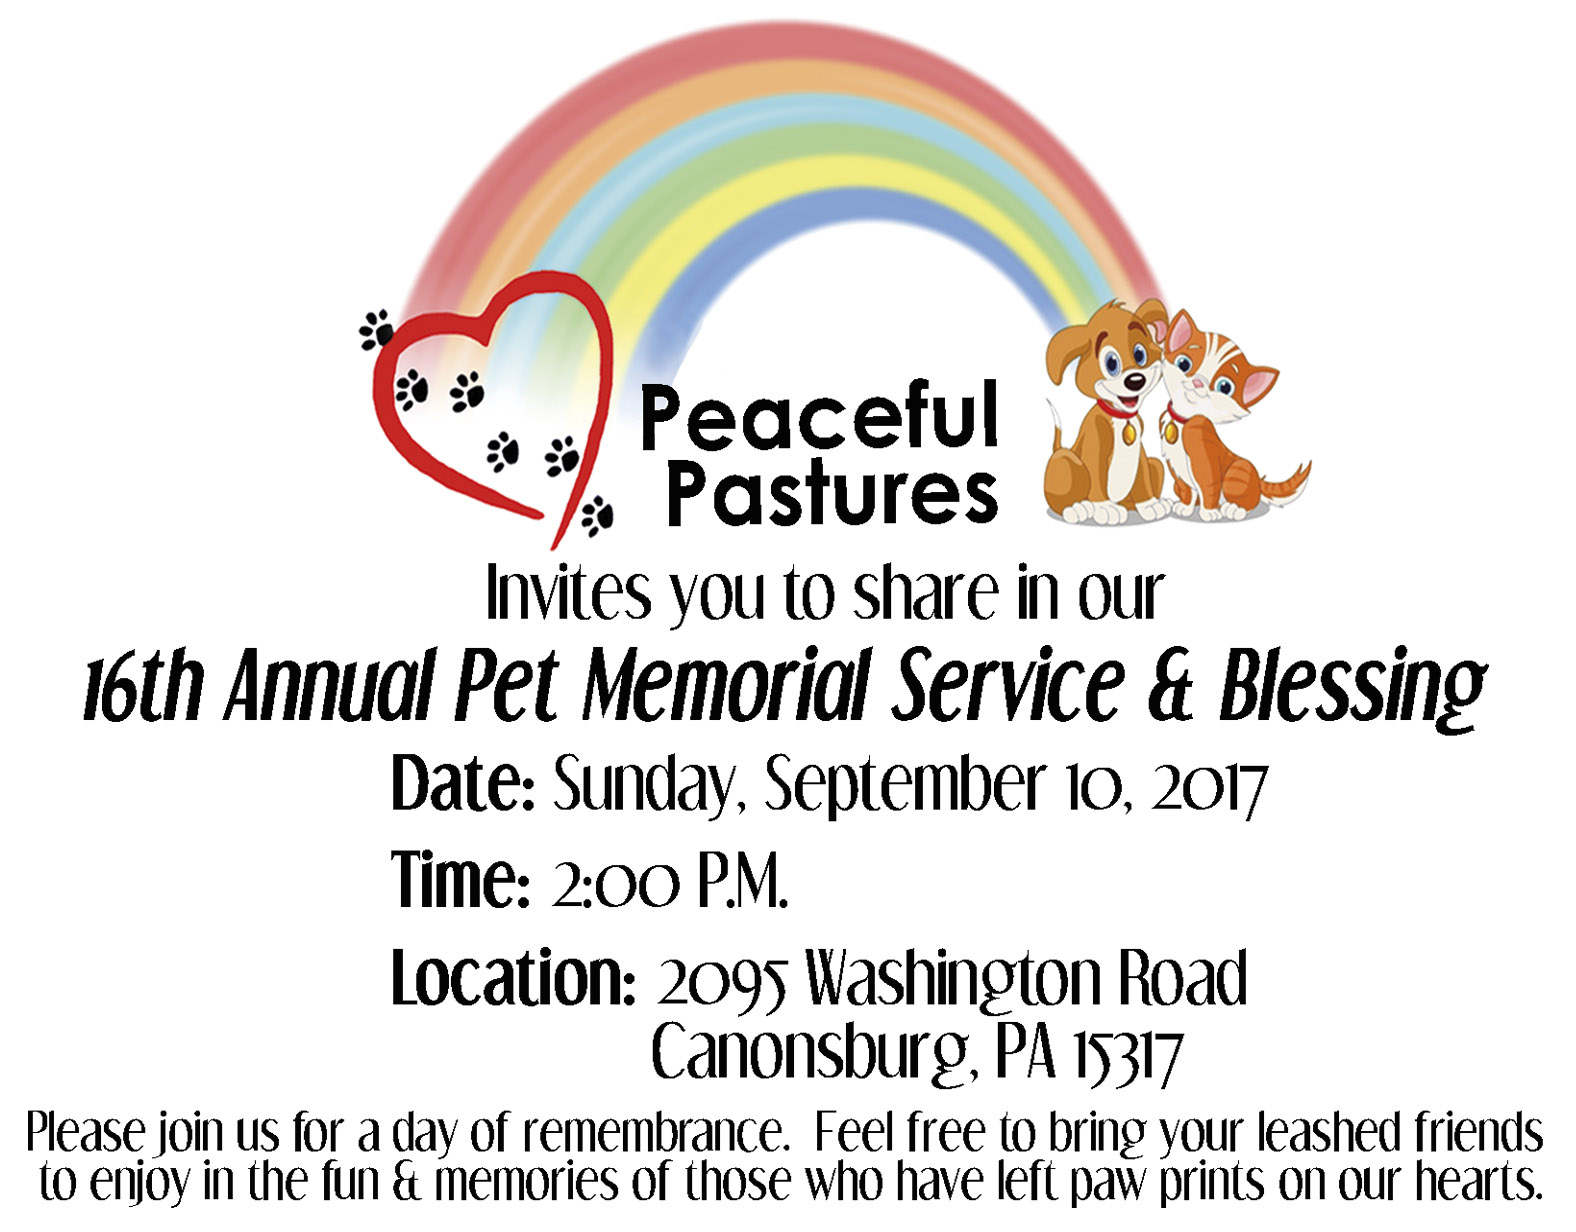 Peaceful Pastures 16th Annual Pet Memorial Service & Blessing